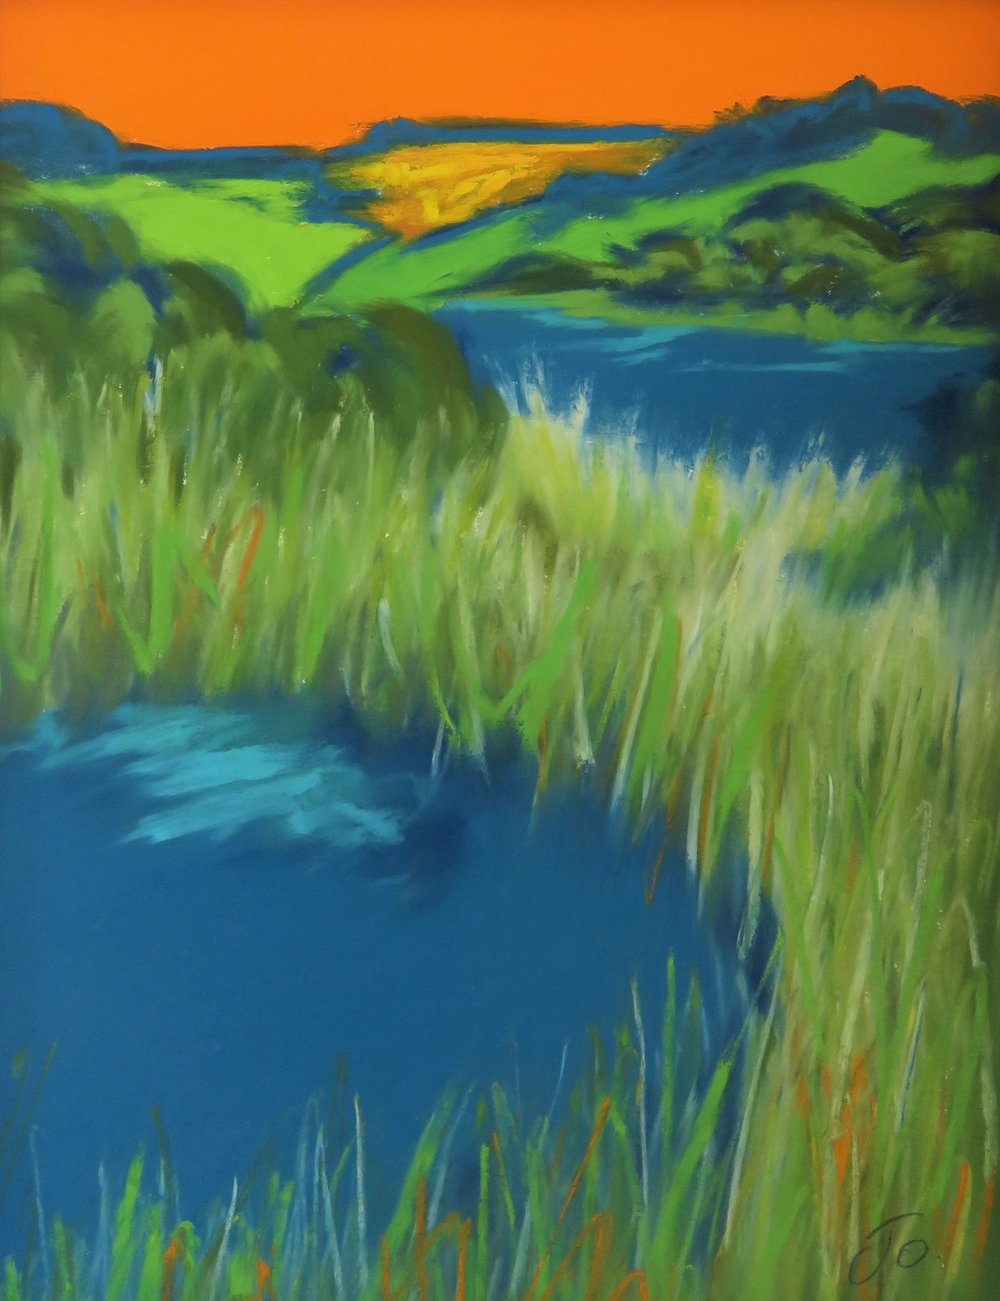 Little Pond - Slapton Ley (SOLD)